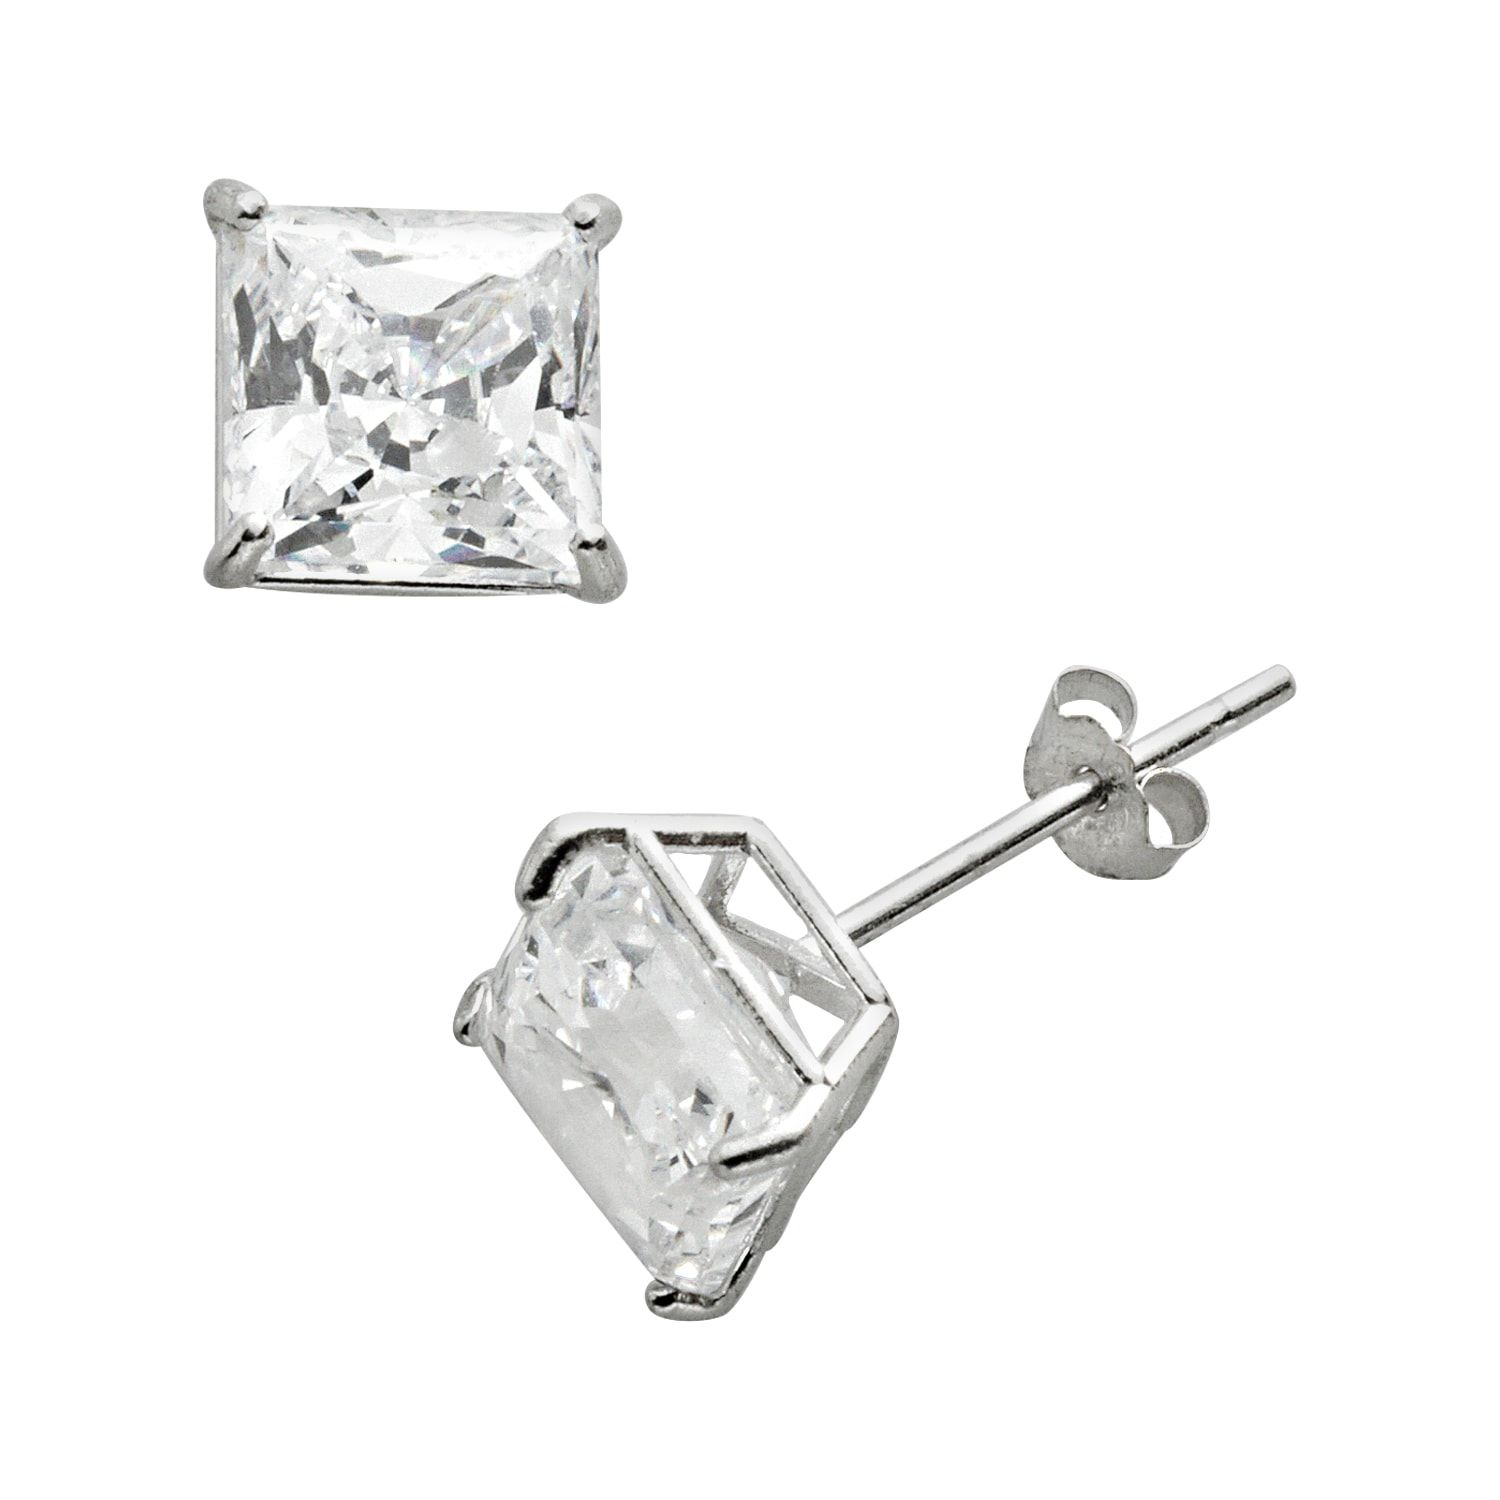 Renaissance Collection 10k White Gold 1 4 5 Ct T W Cubic Zirconia Stud Earrings Made With Swarovsk White Gold Studs White Gold Earrings Studs Stud Earrings